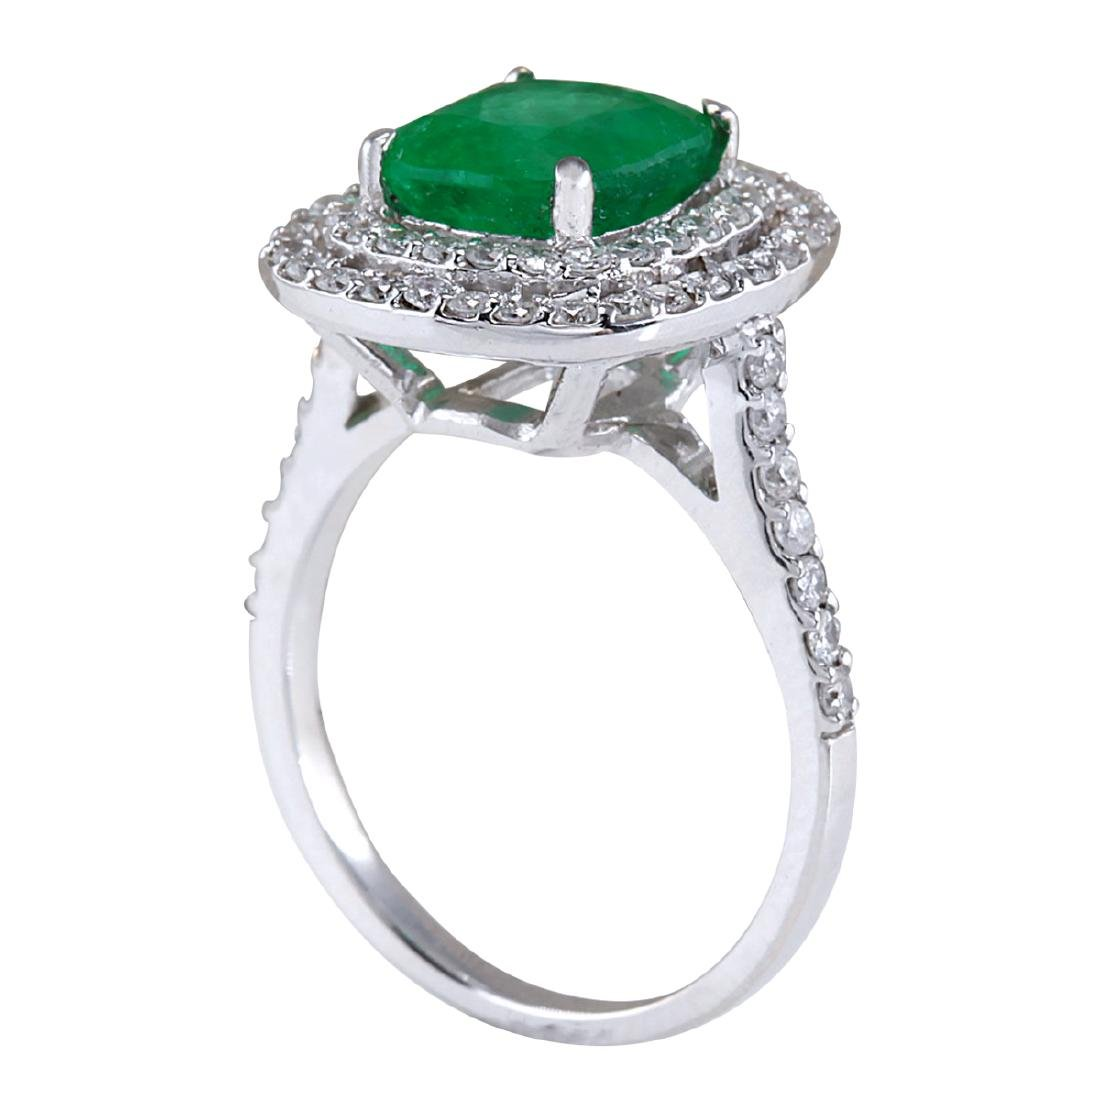 3.74CTW Natural Emerald And Diamond Ring In 14K White - 3